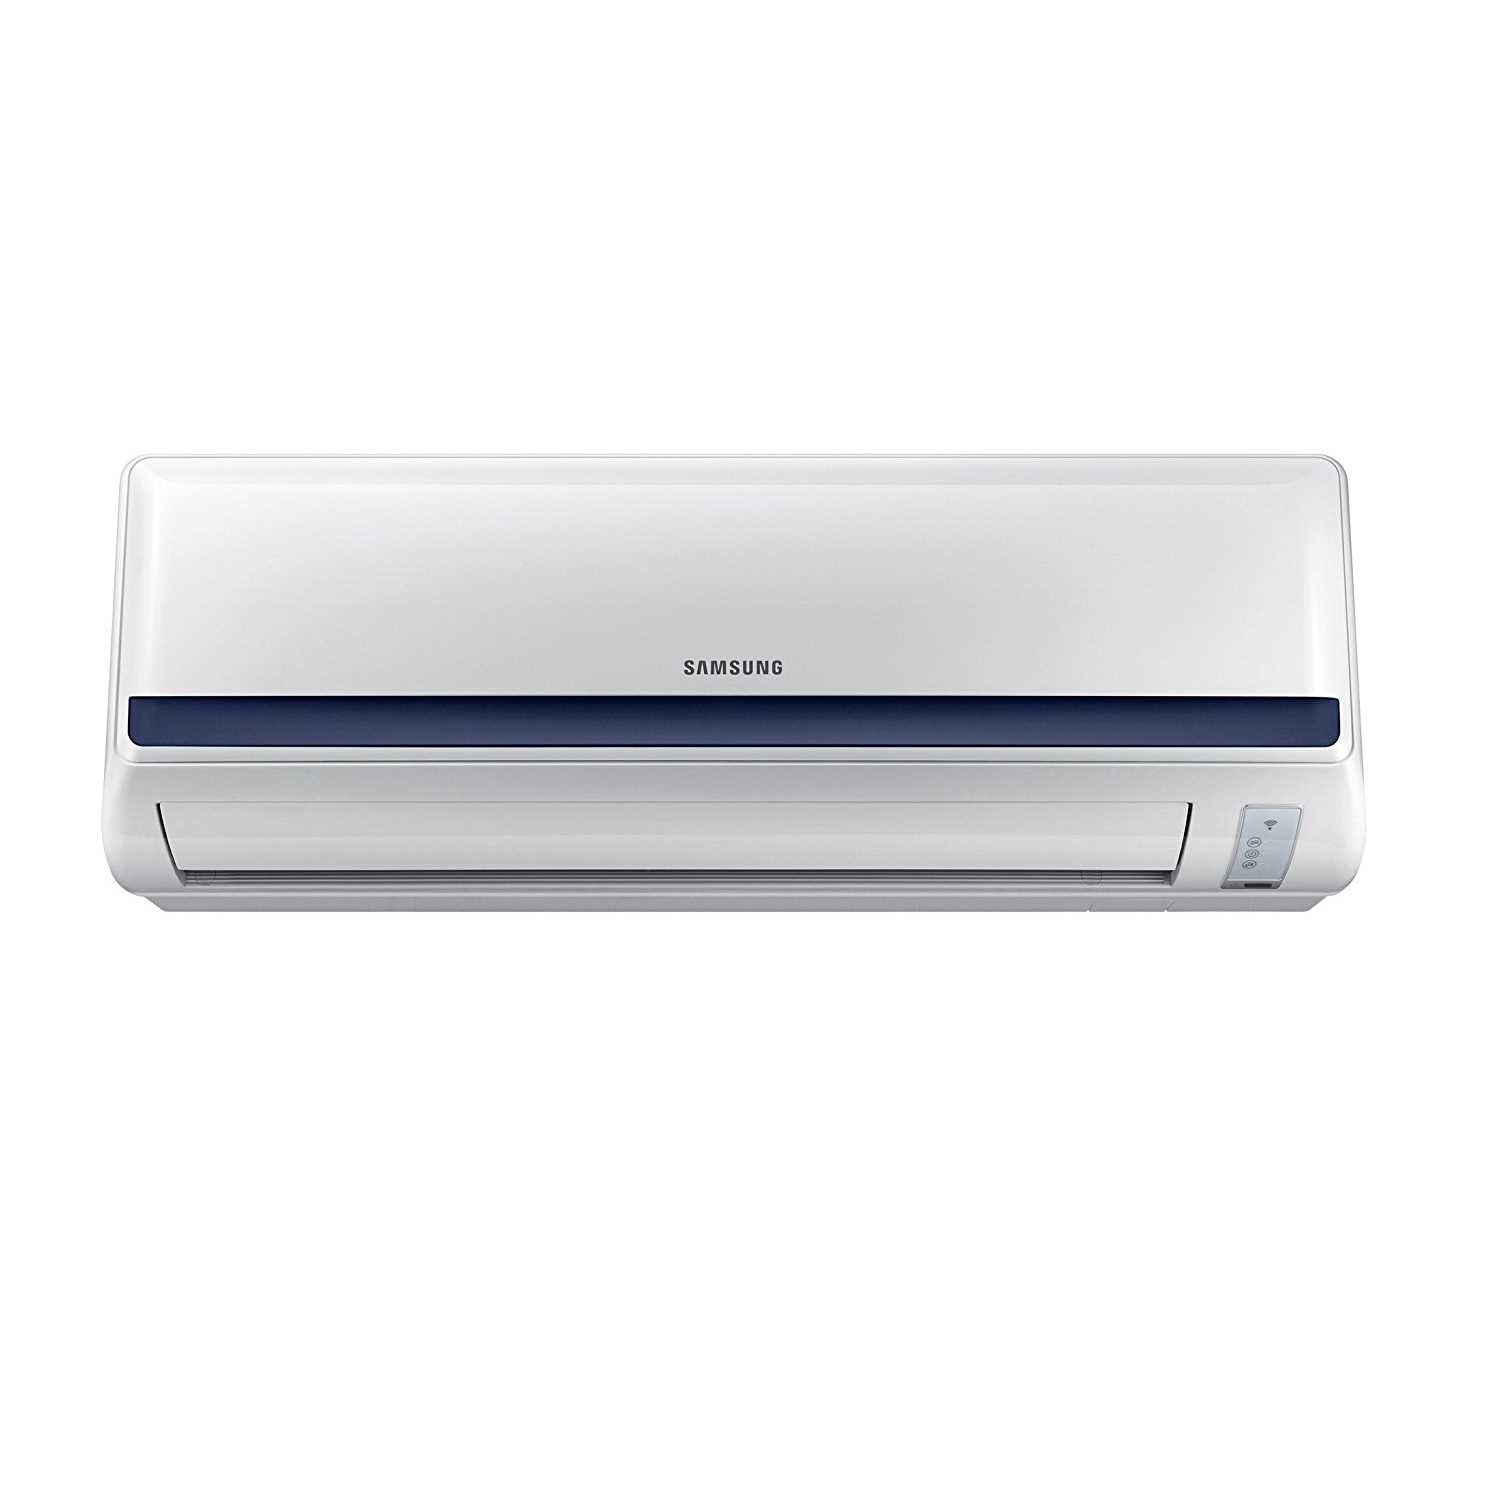 Samsung AR18NV3UFMC 1.5 Ton 3 Star Inverter Split AC